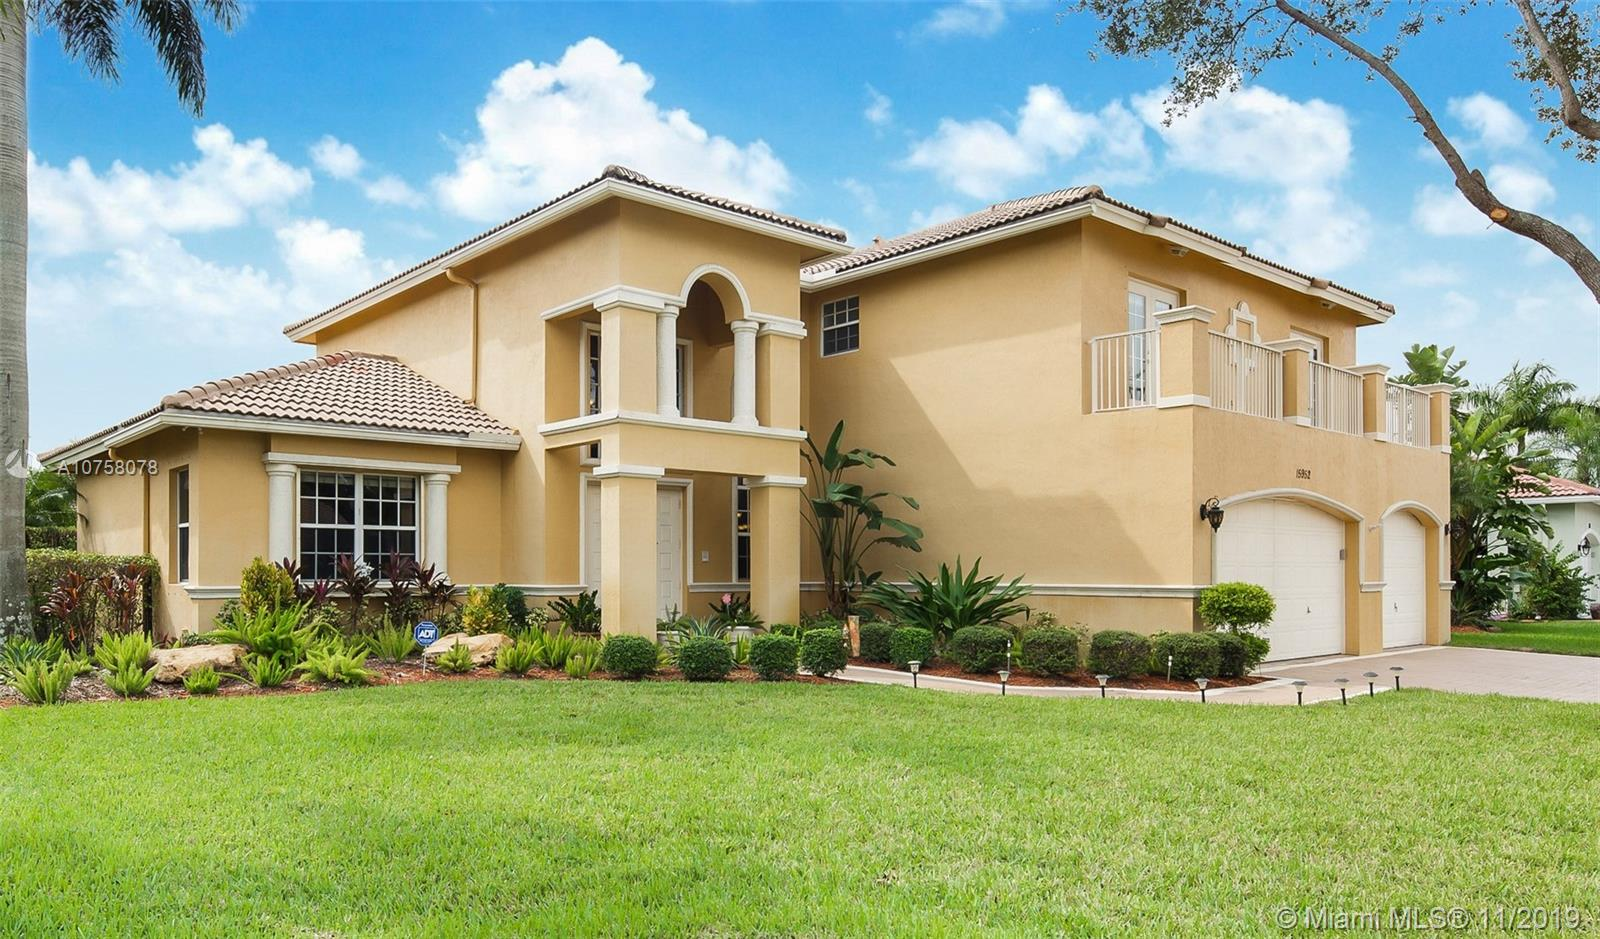 Property for sale at 15952 7 Street, Pembroke Pines,  Florida 33027